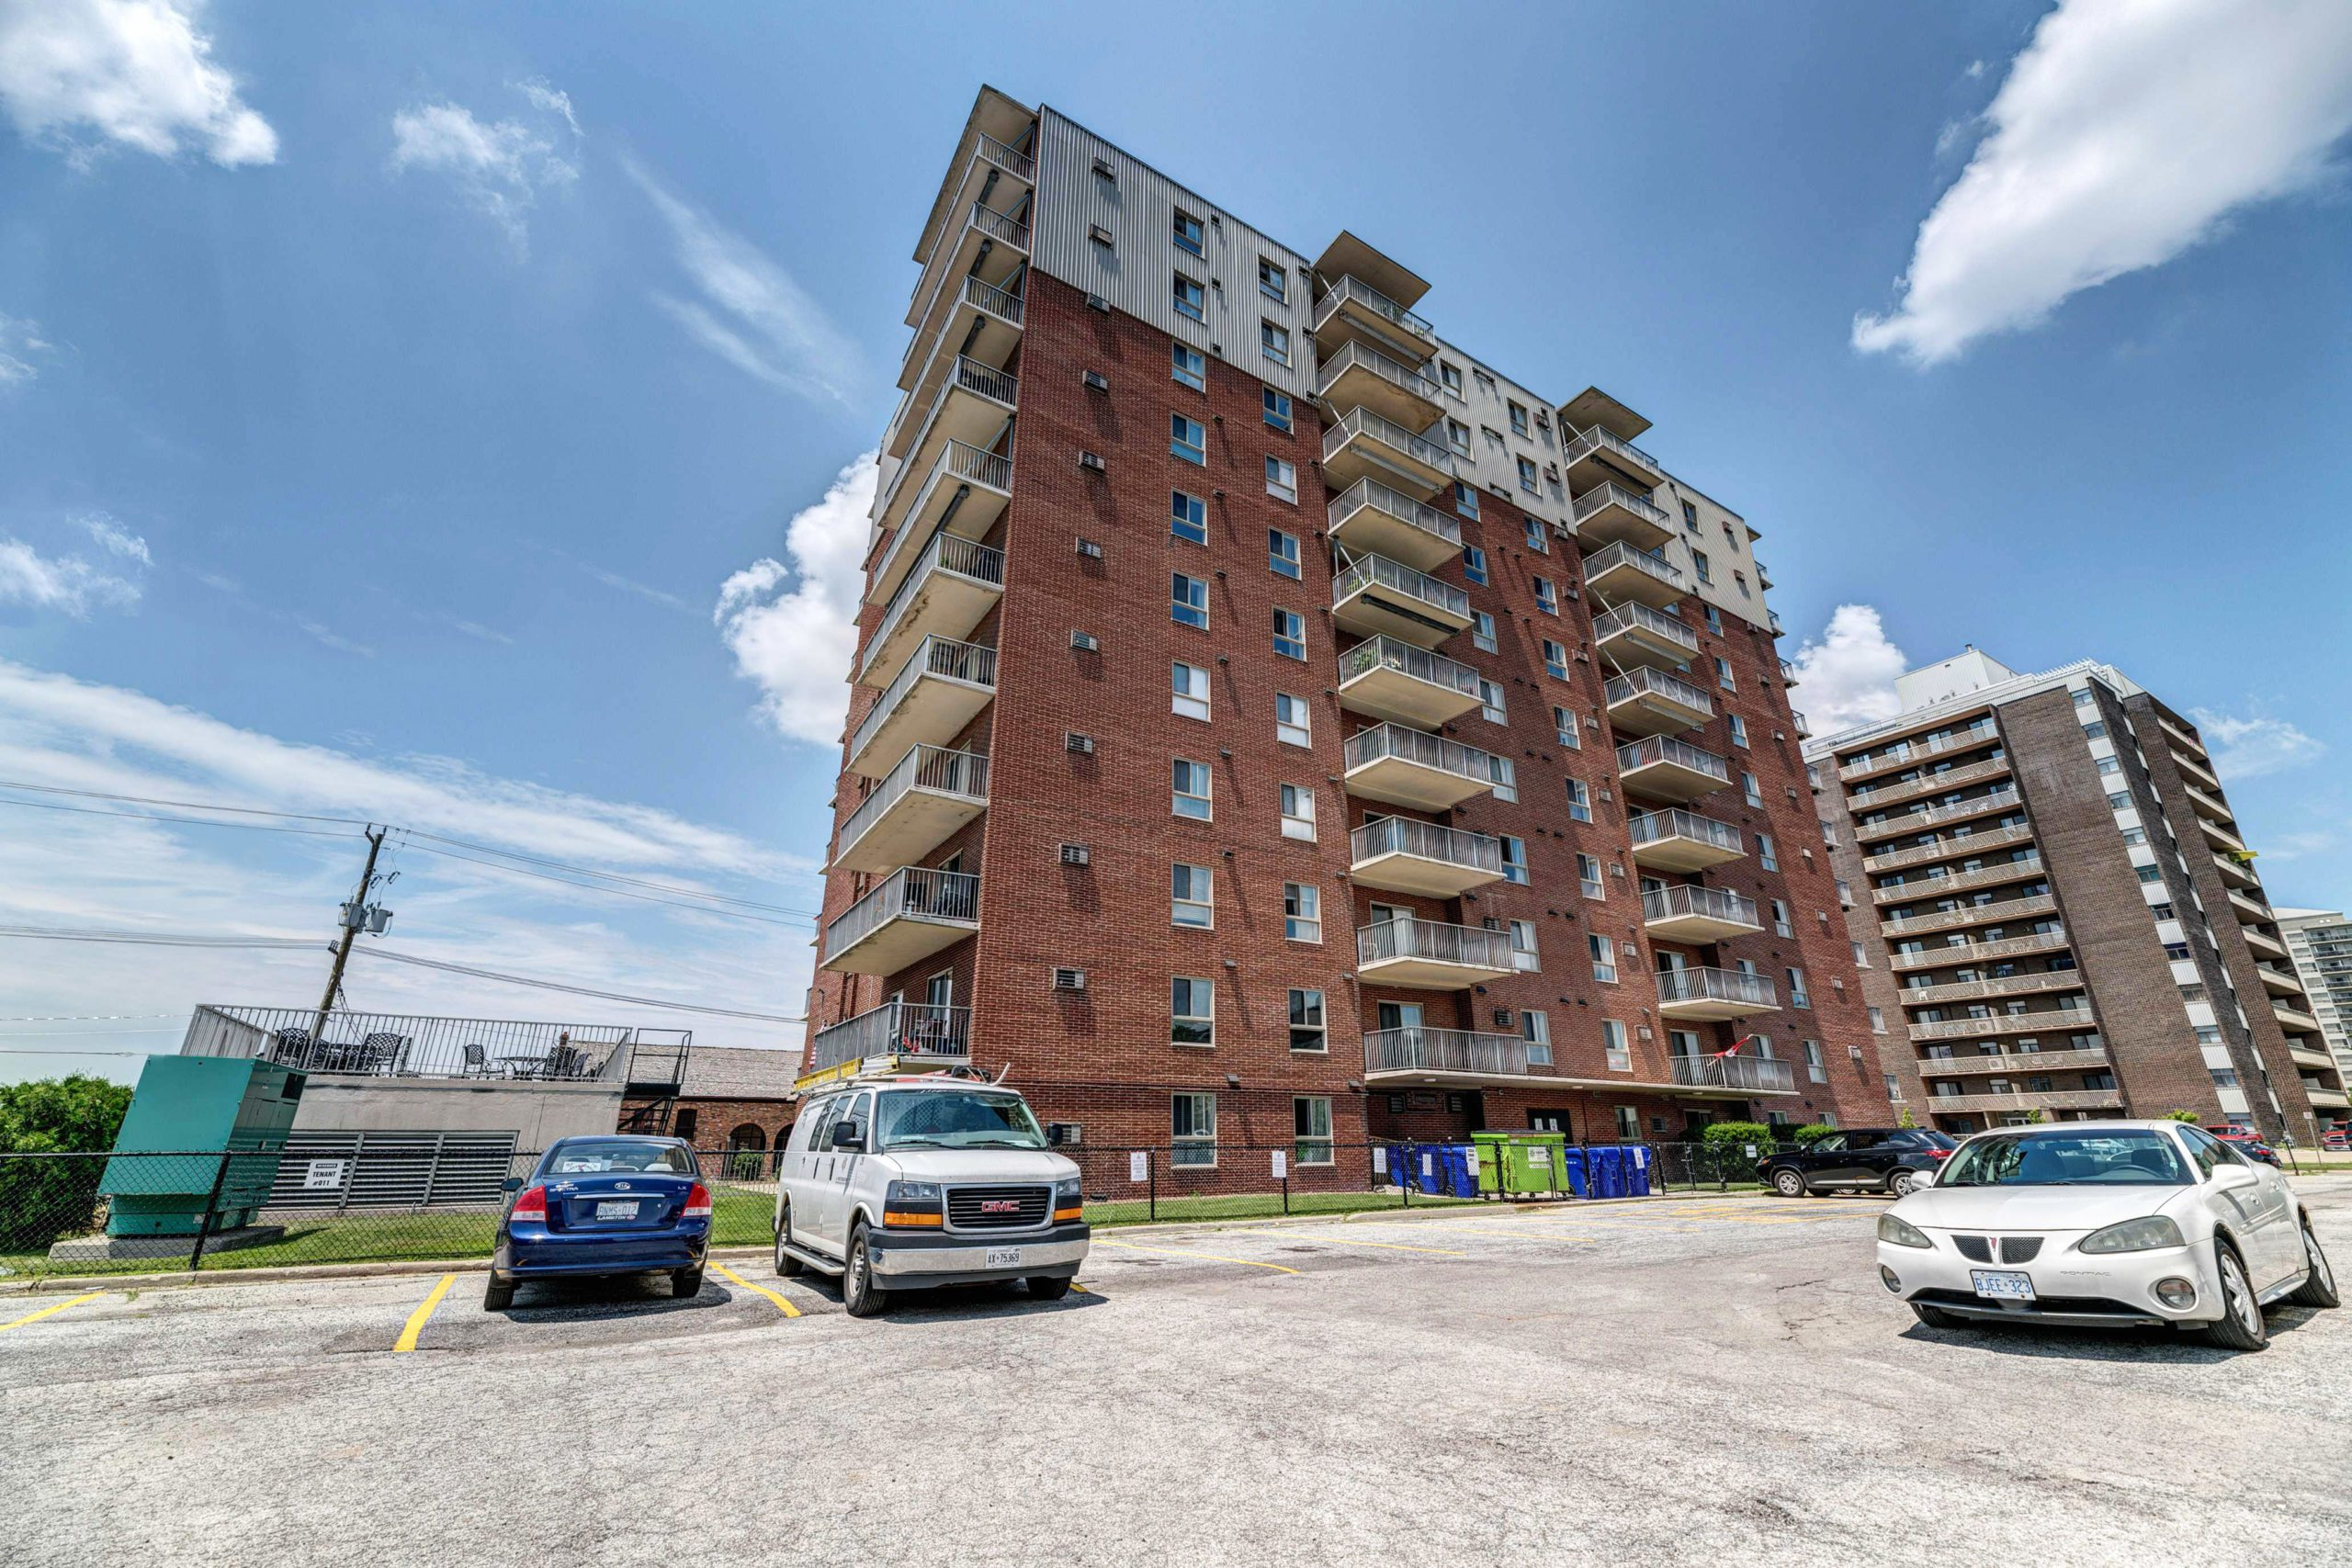 Eleven-storey apartment in Sarnia